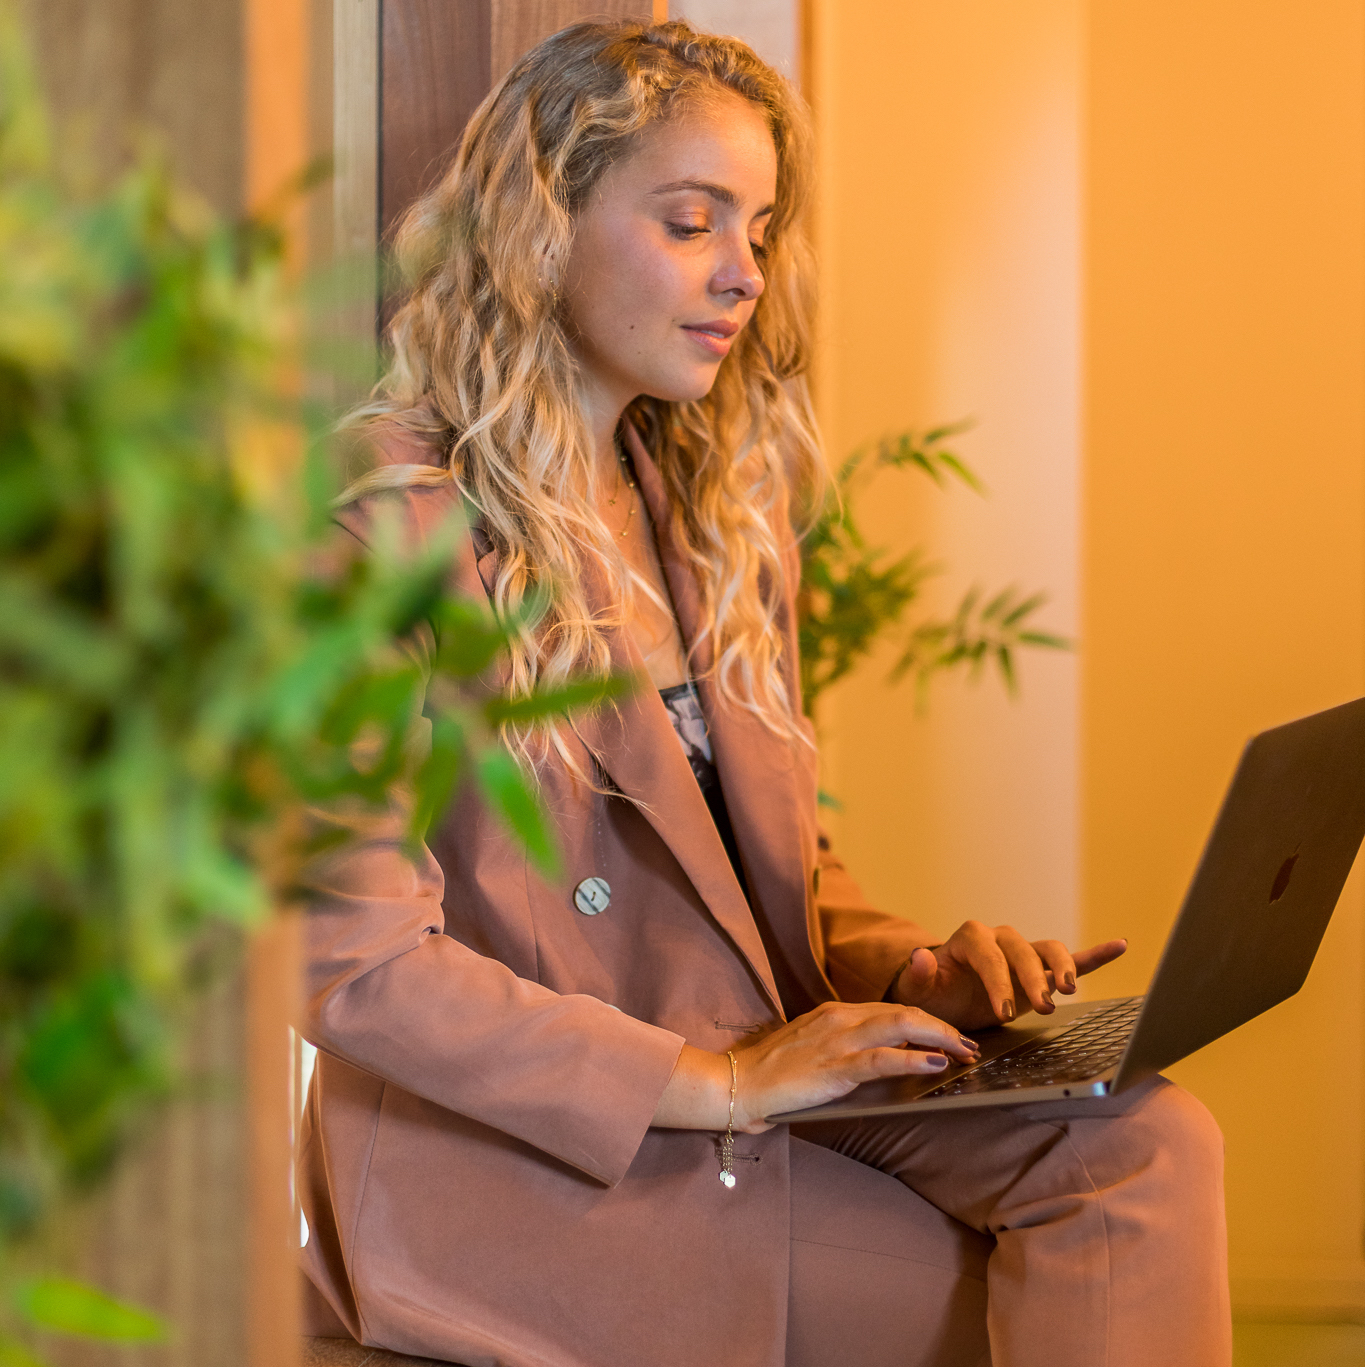 Woman looking at laptop on her lap